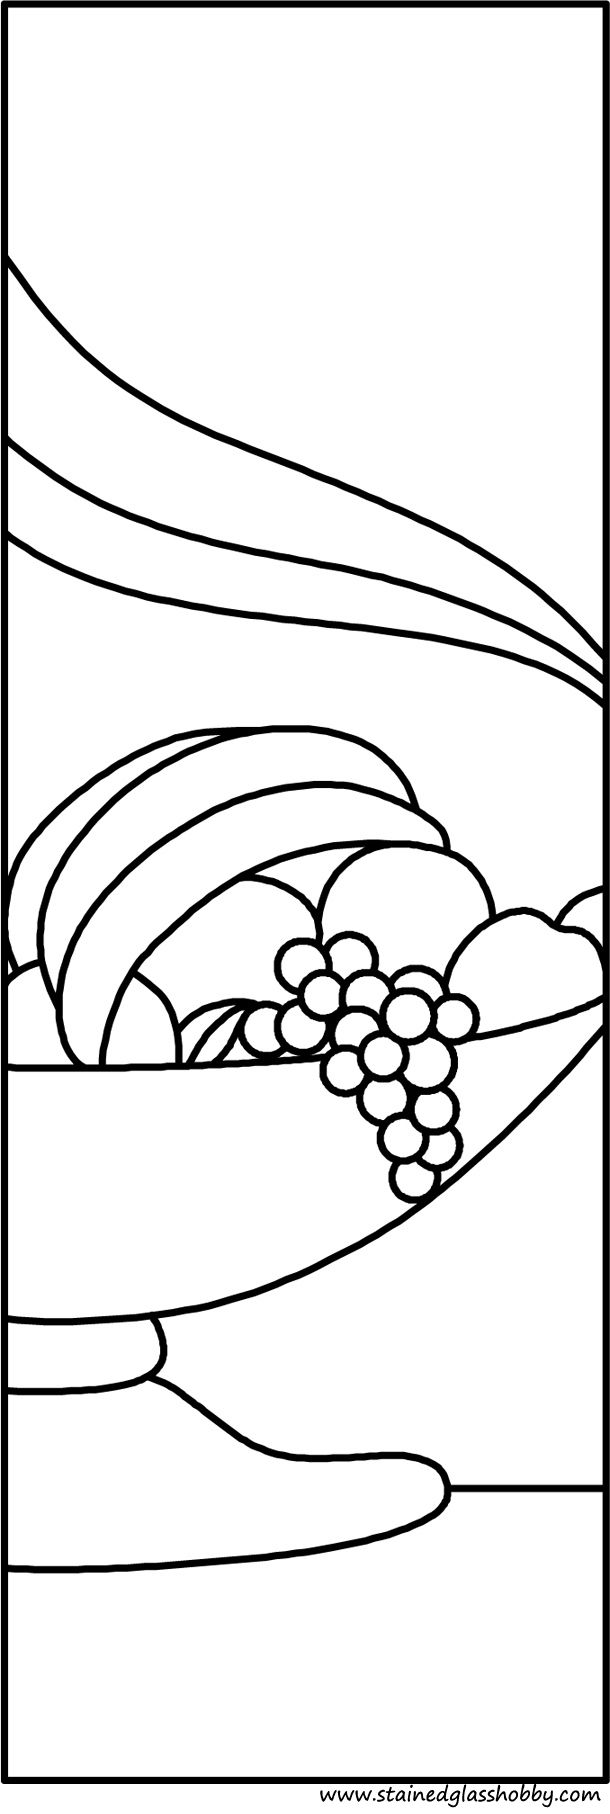 Fruit in bowl stained glass pattern  sc 1 st  Pinterest & Fruit in bowl stained glass pattern | Doodle Templates | Pinterest ...